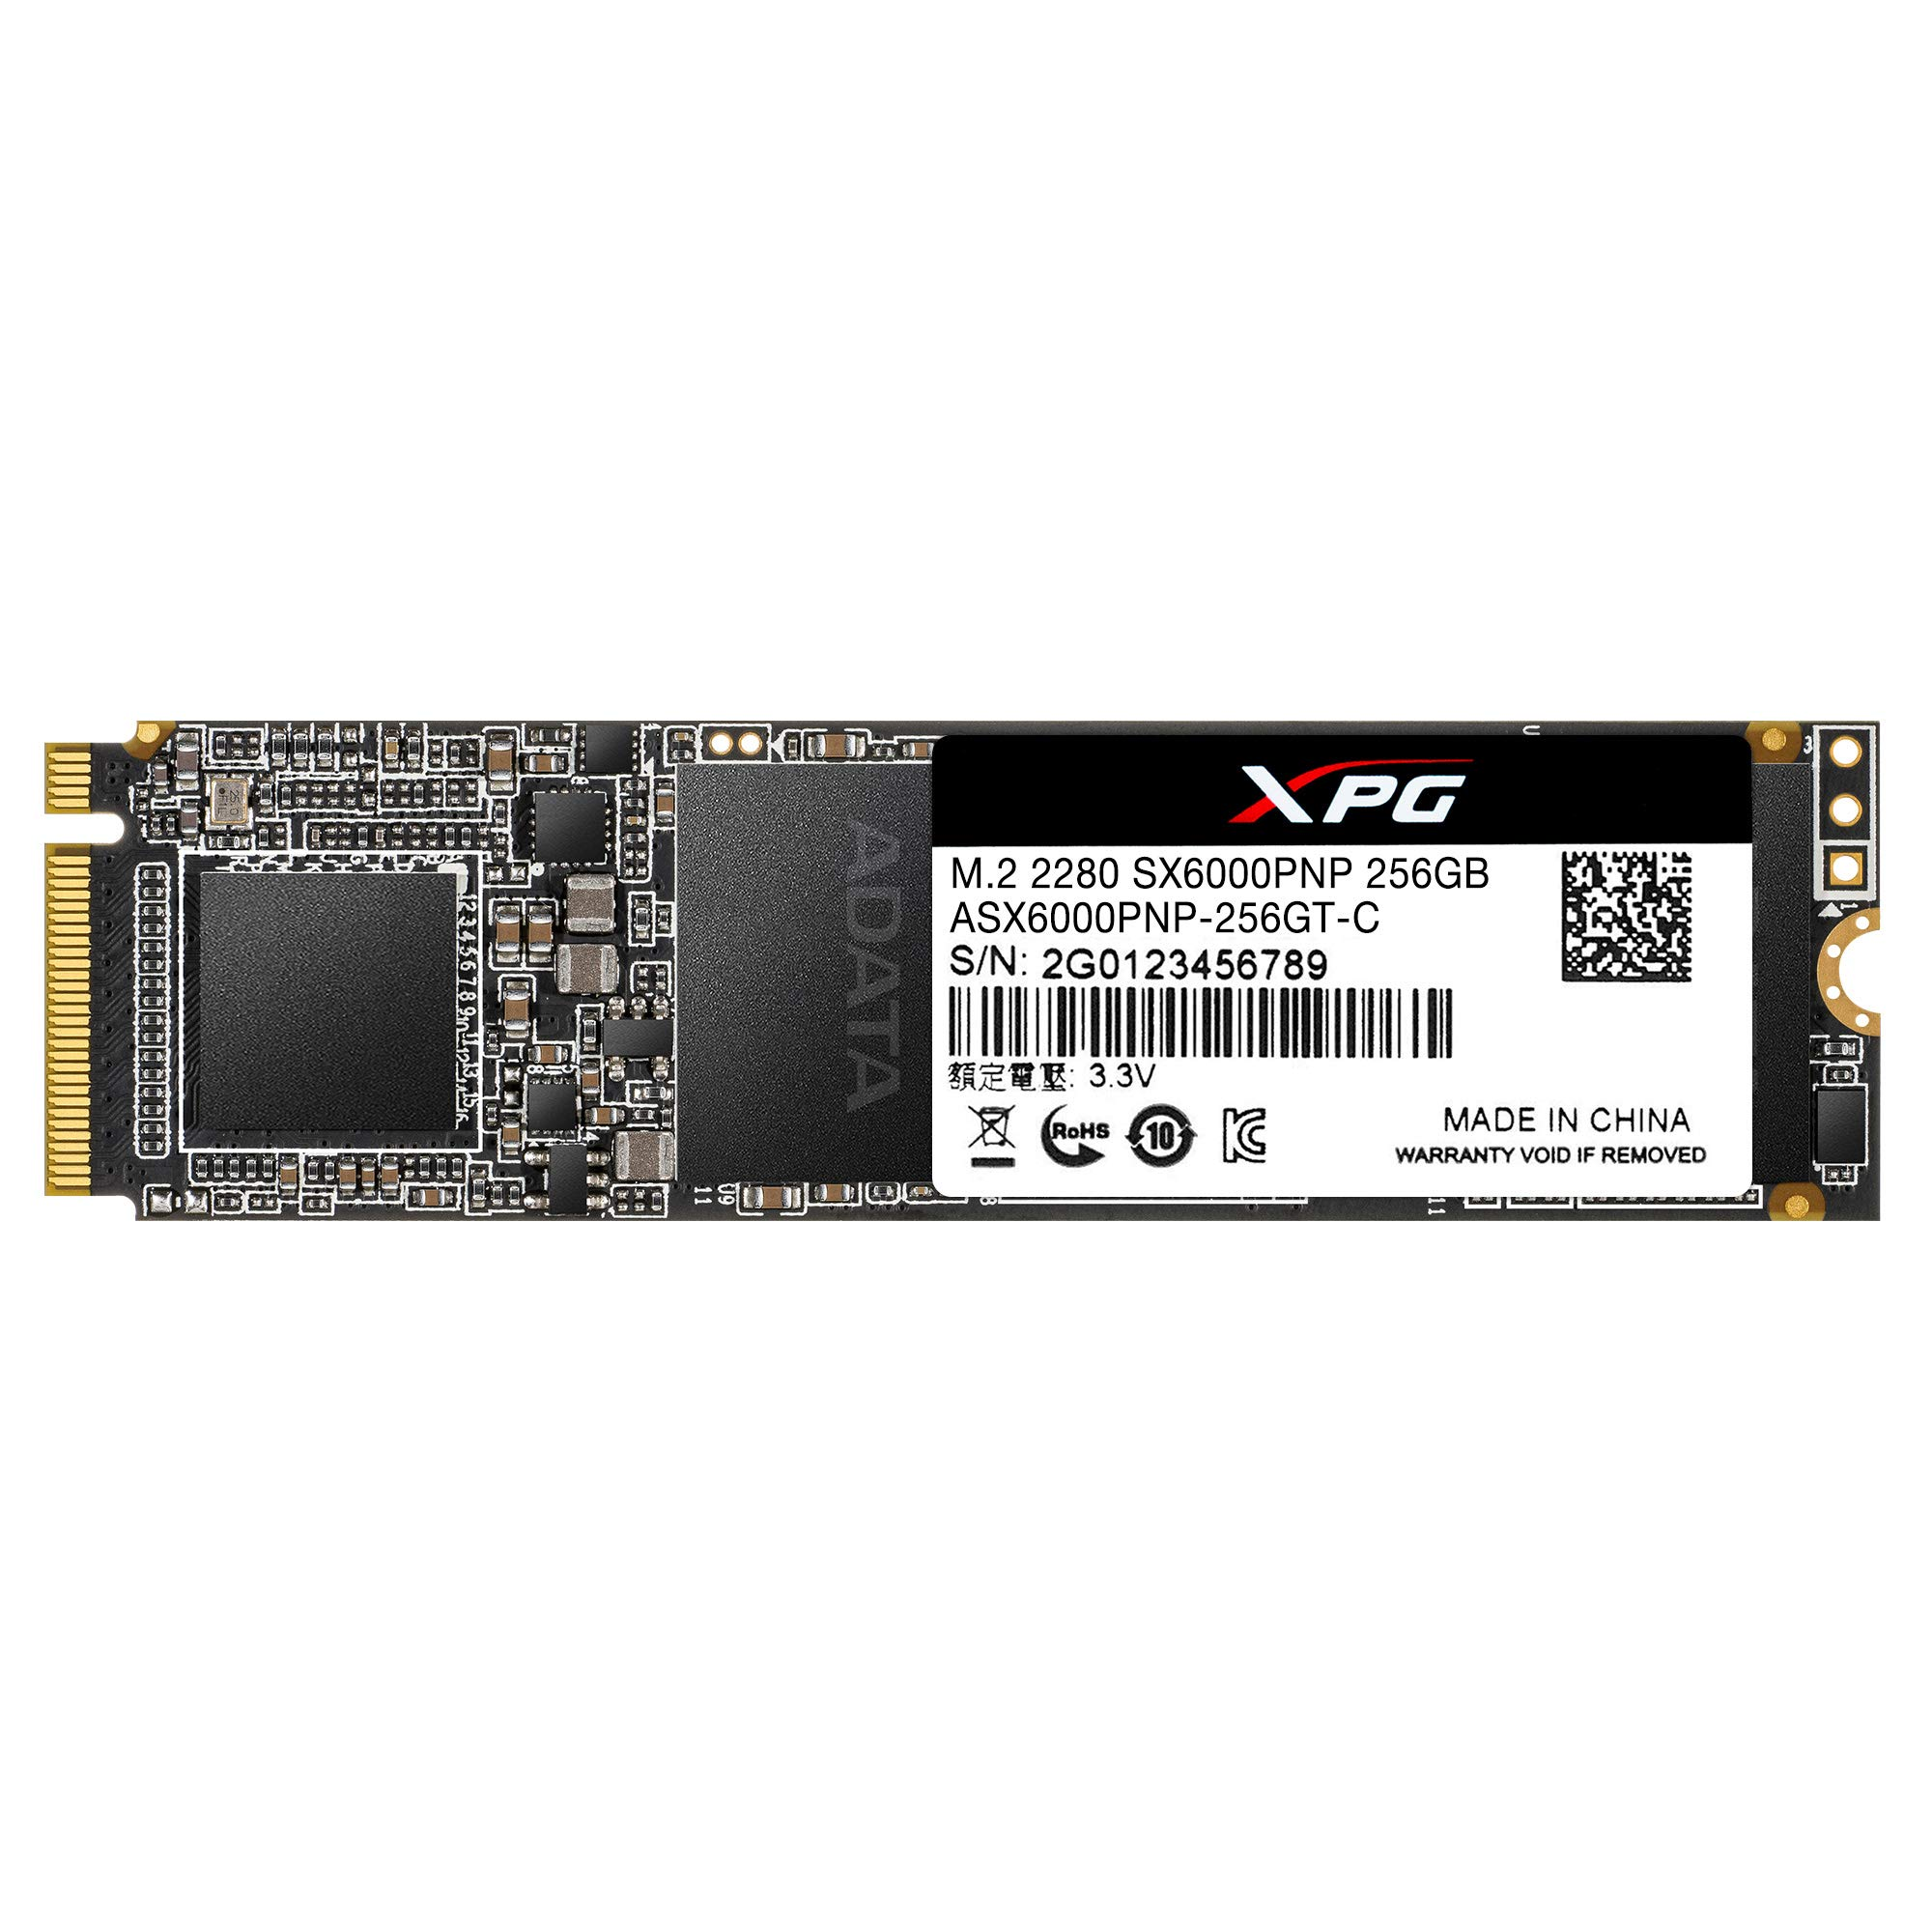 XPG SX6000 Pro 256GB PCIe 3D NAND PCIe Gen3x4 M.2 2280 NVMe 1.3 R/W up to 2100/1500MB/s SSD (ASX6000PNP-256GT-C)